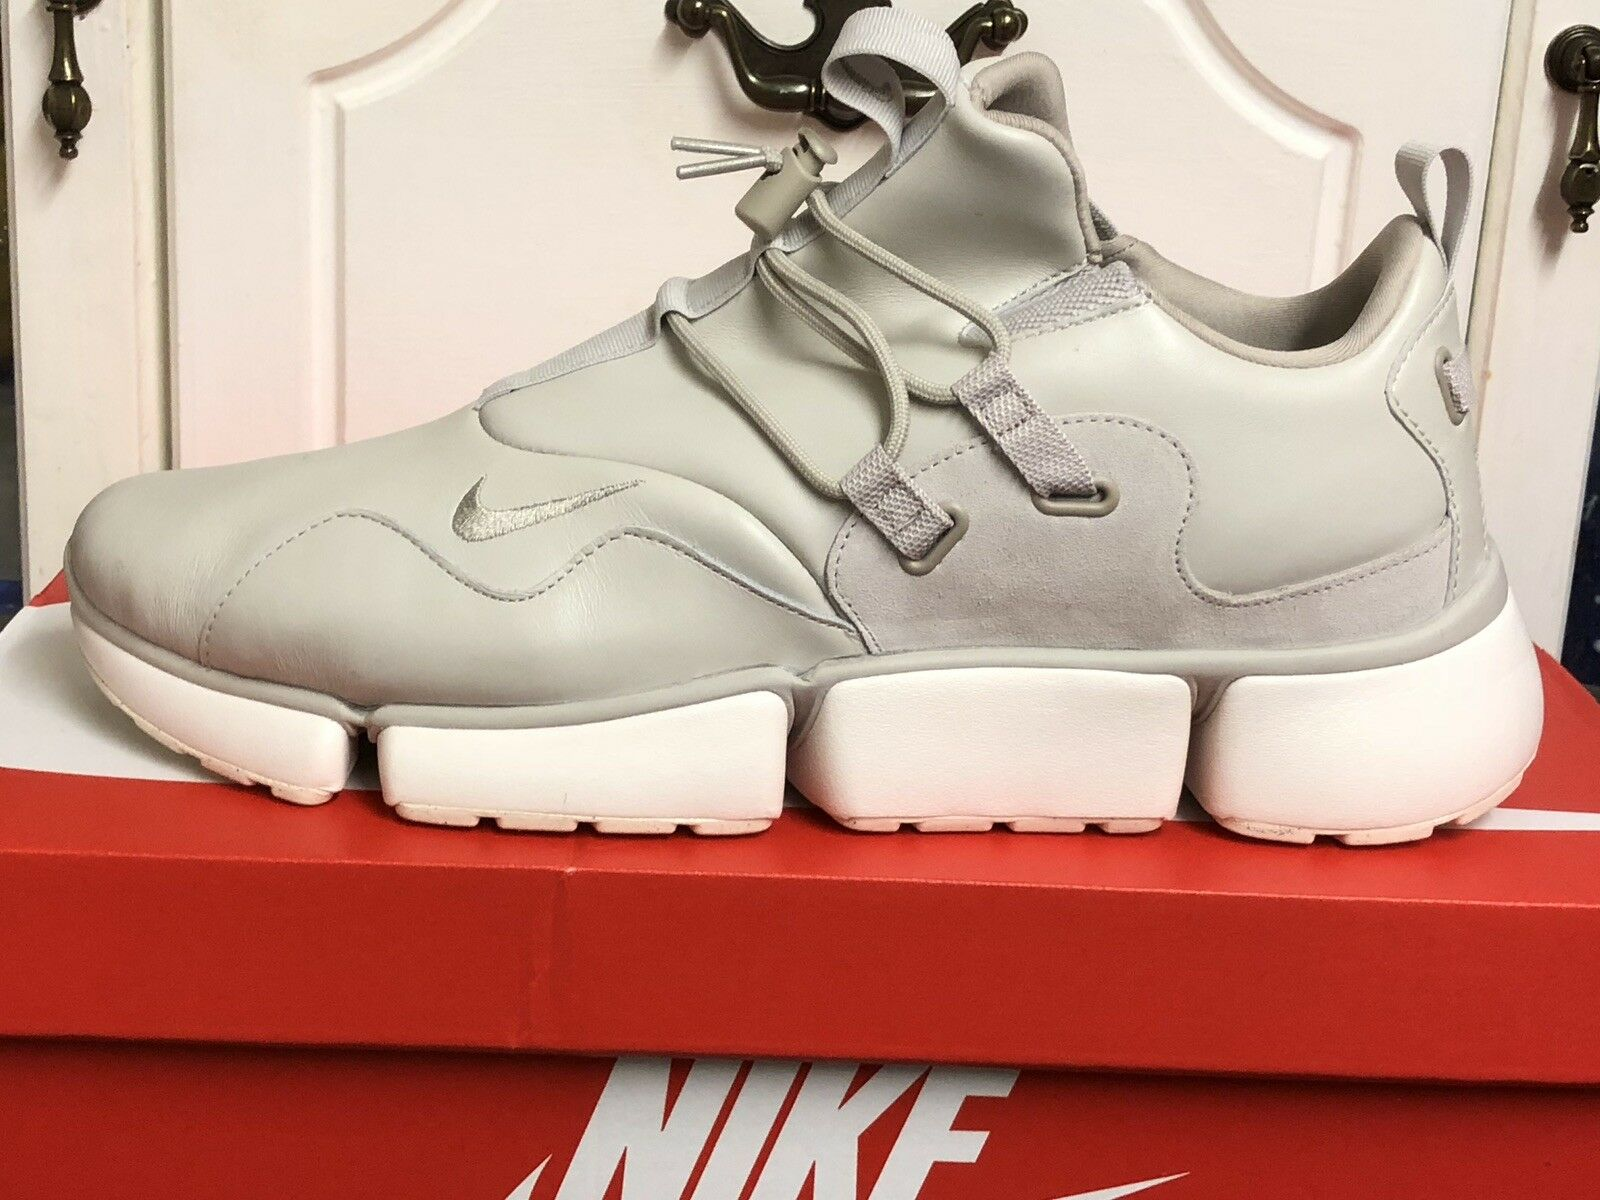 96a26f76f18 Nike POCKETKNIFE DM LEATHER MENS SNEAKERS SHOES US 15 TRAINERS  nxrvkz8455-Athletic Shoes